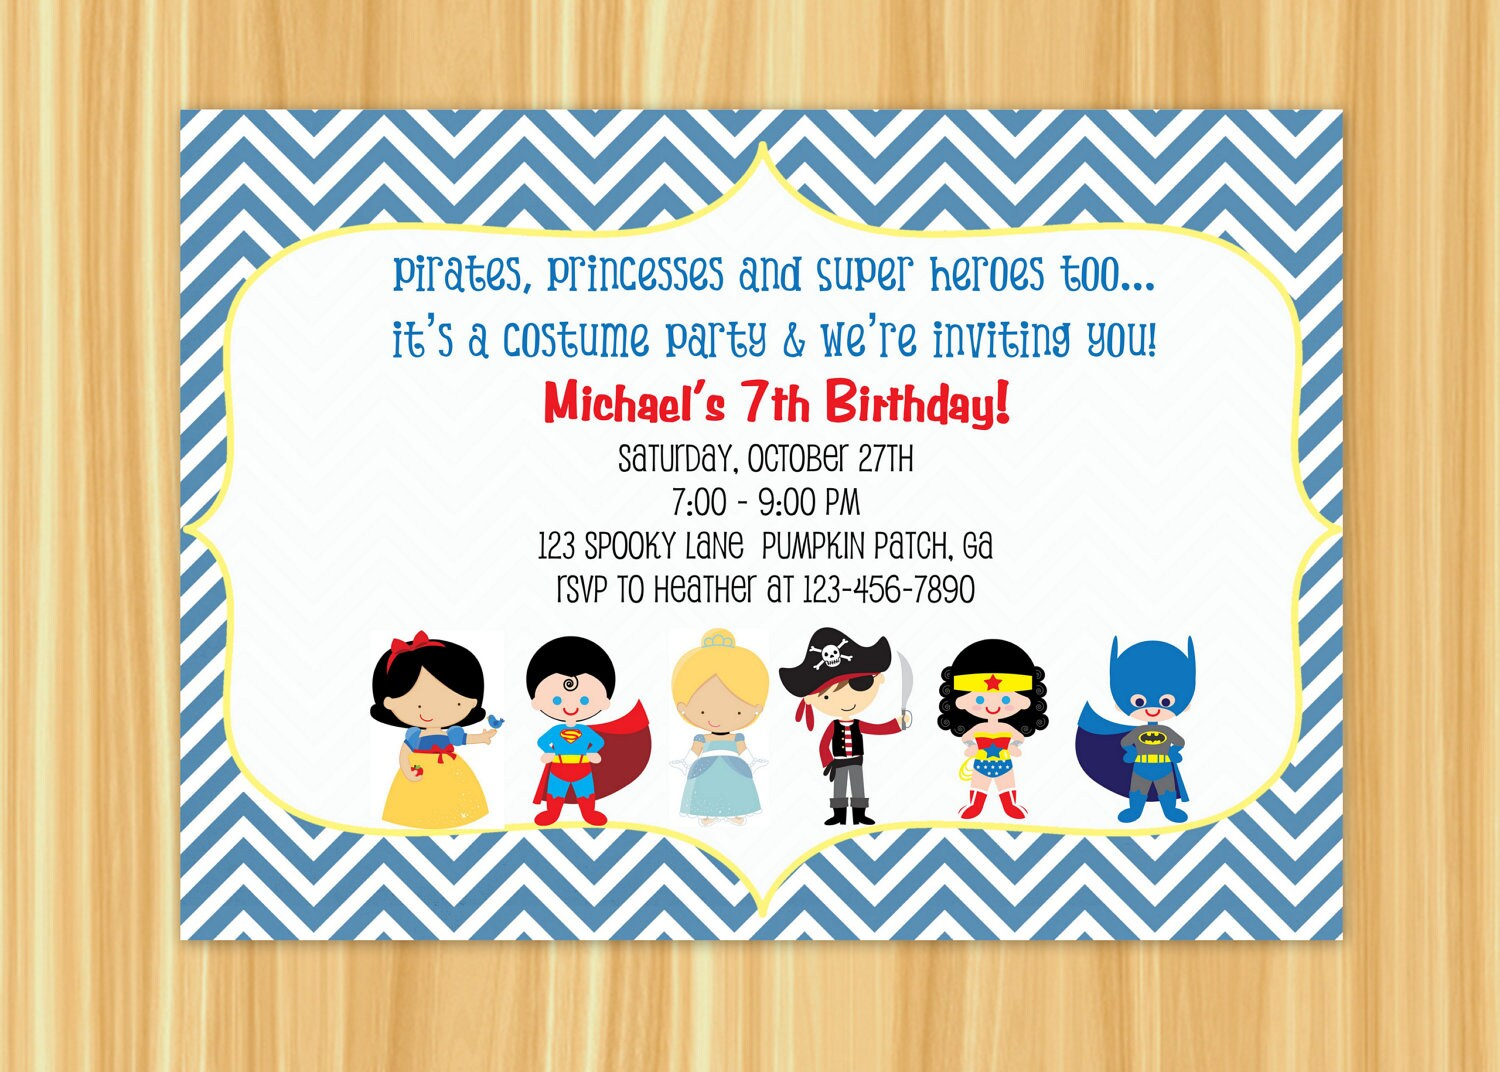 costume party invitations free printable - Dorit.mercatodos.co